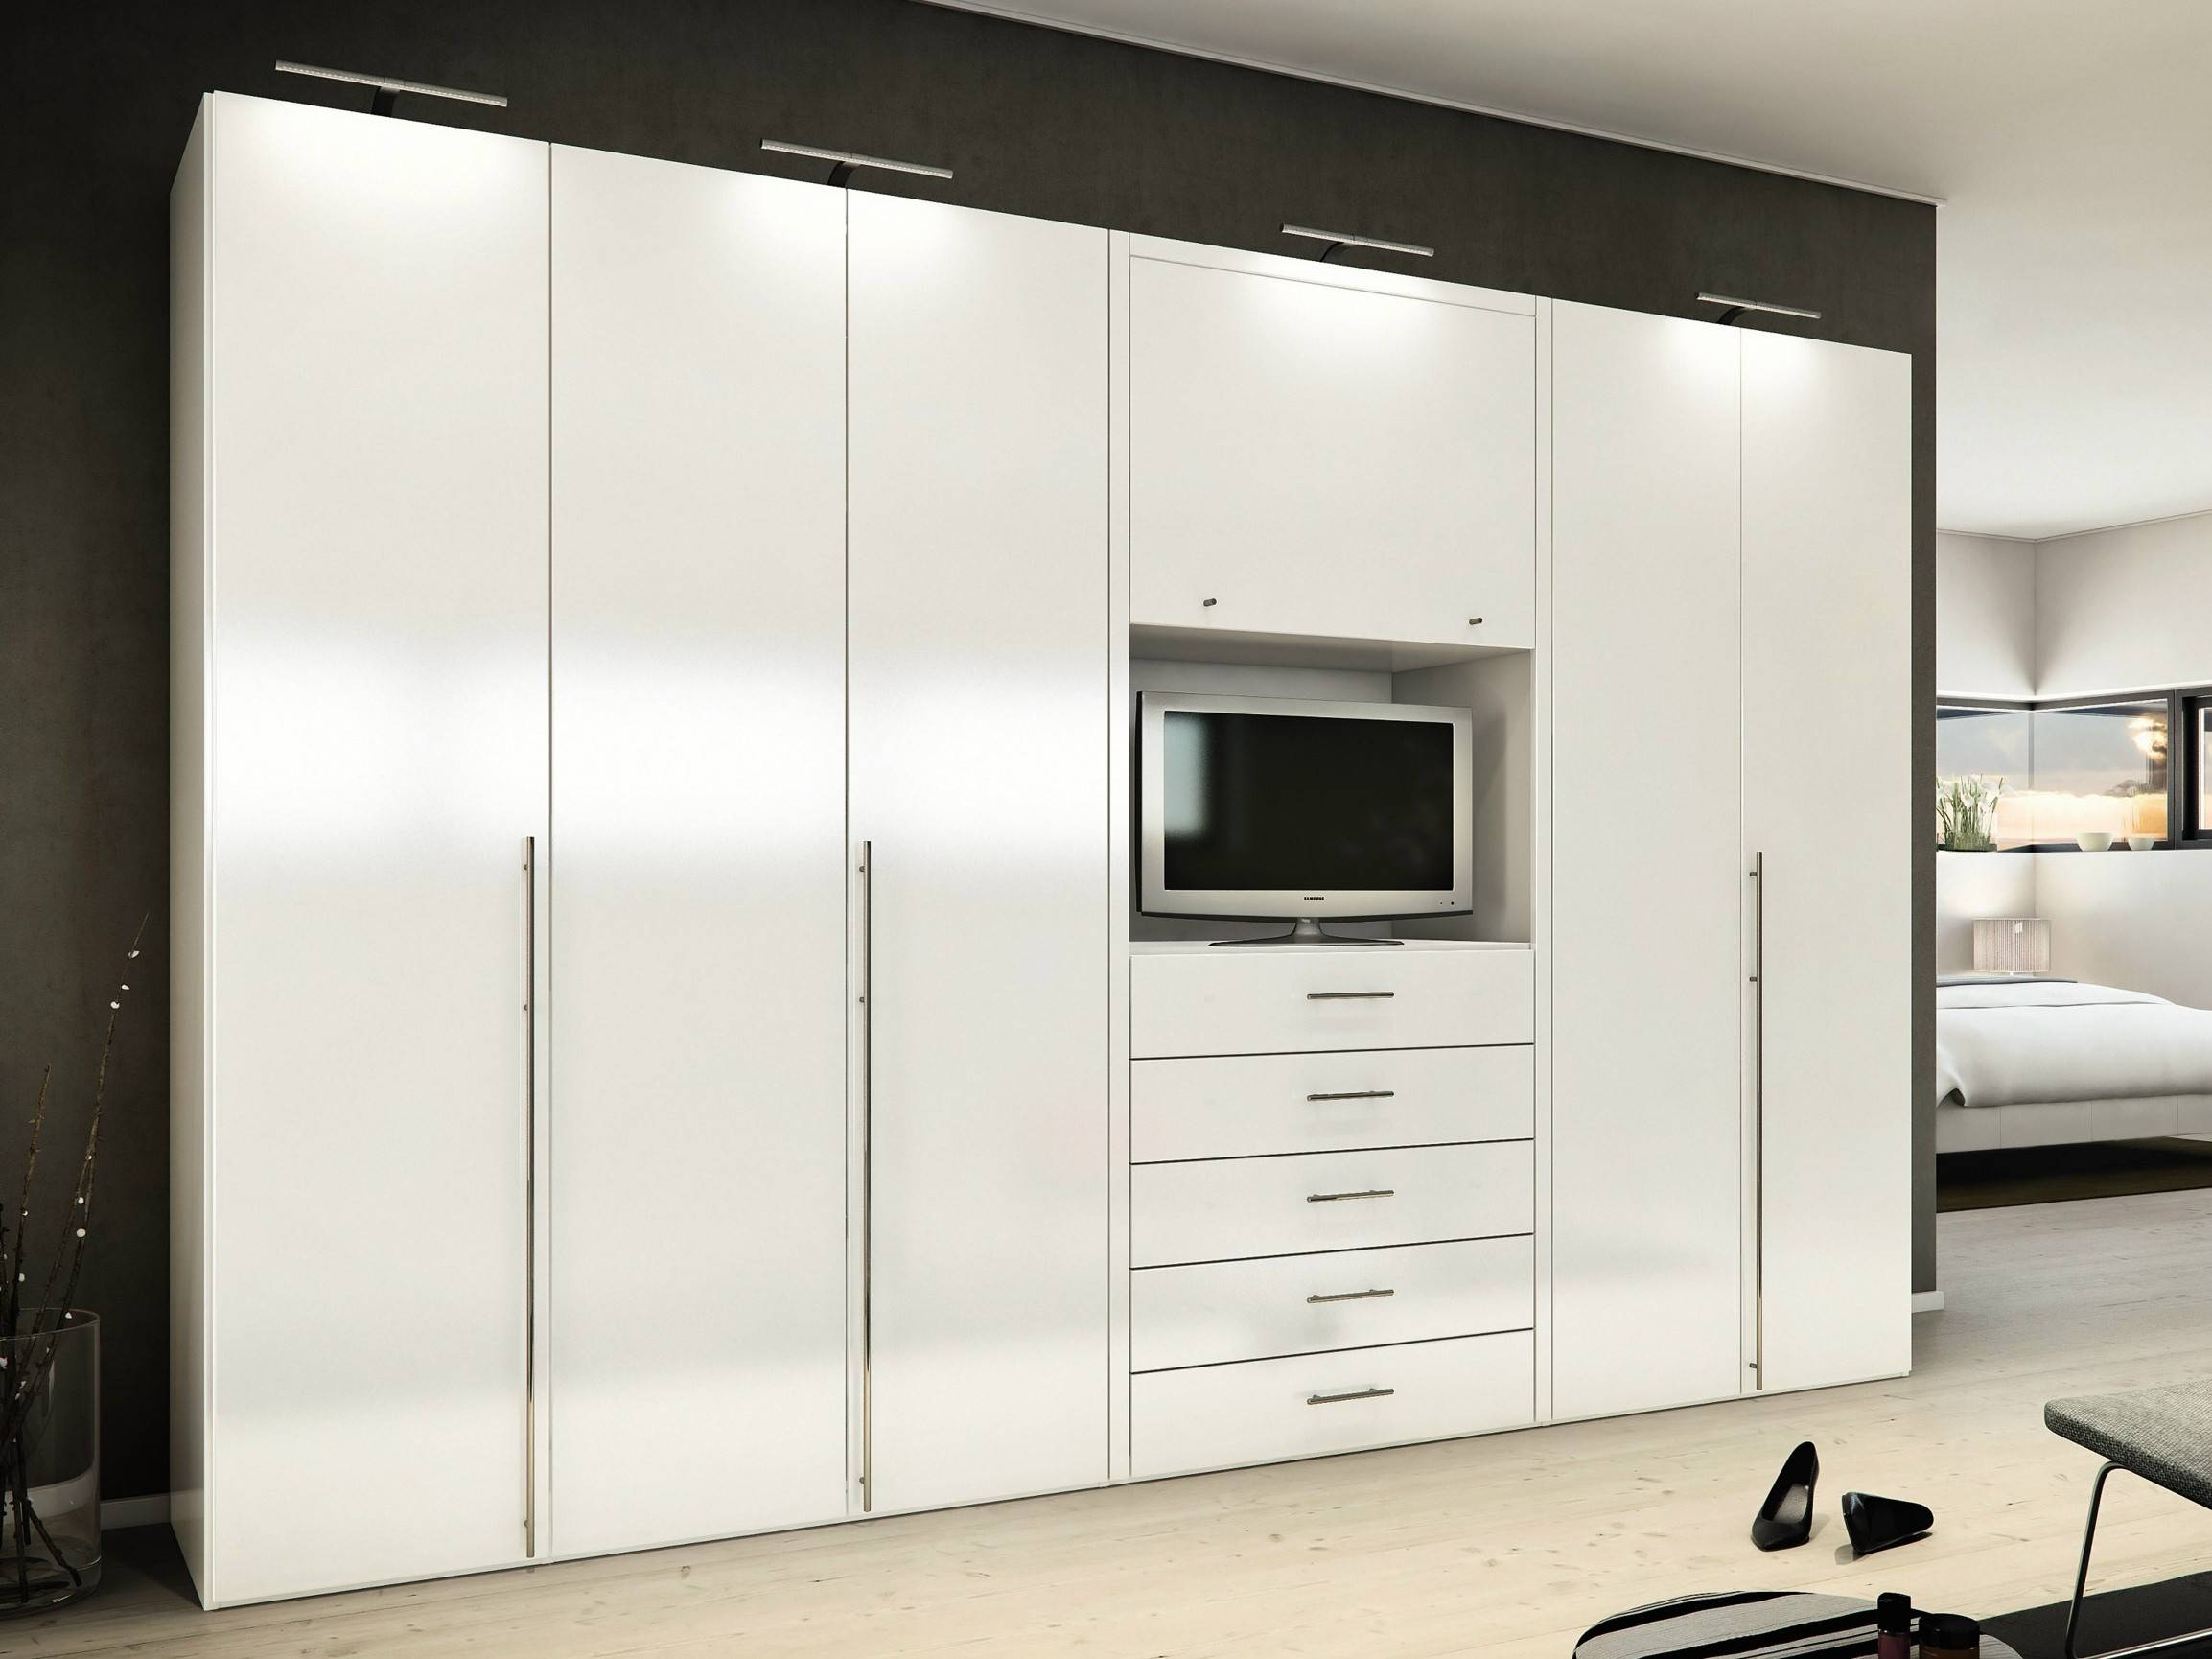 Large White Wooden Wardrobe Combined With Drawers Also Storage And intended for Double Wardrobe With Drawers And Shelves (Image 22 of 30)